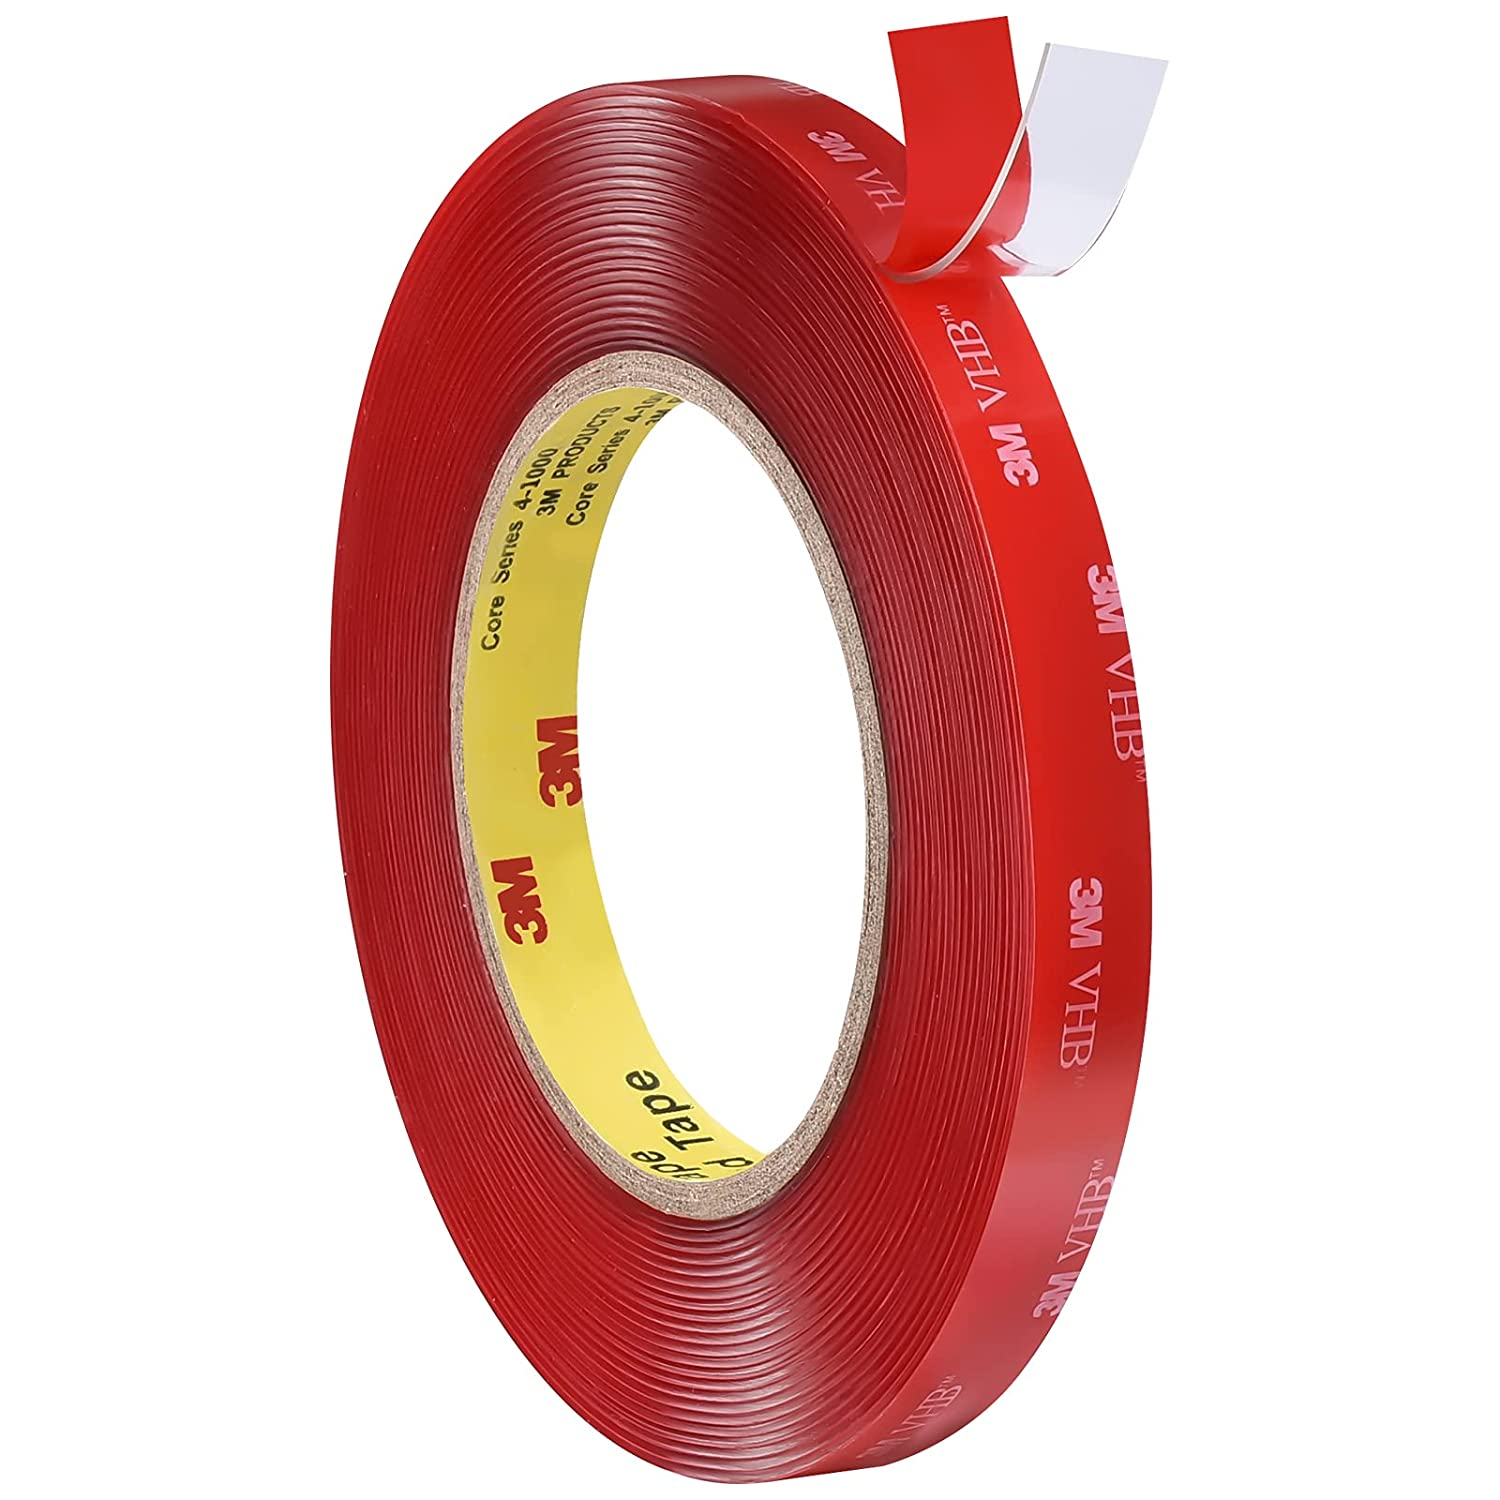 Double Sided Tape Heavy Duty Sumilka Waterpr 32 Large Fixed price for sale special price X Inch Feet 0.5